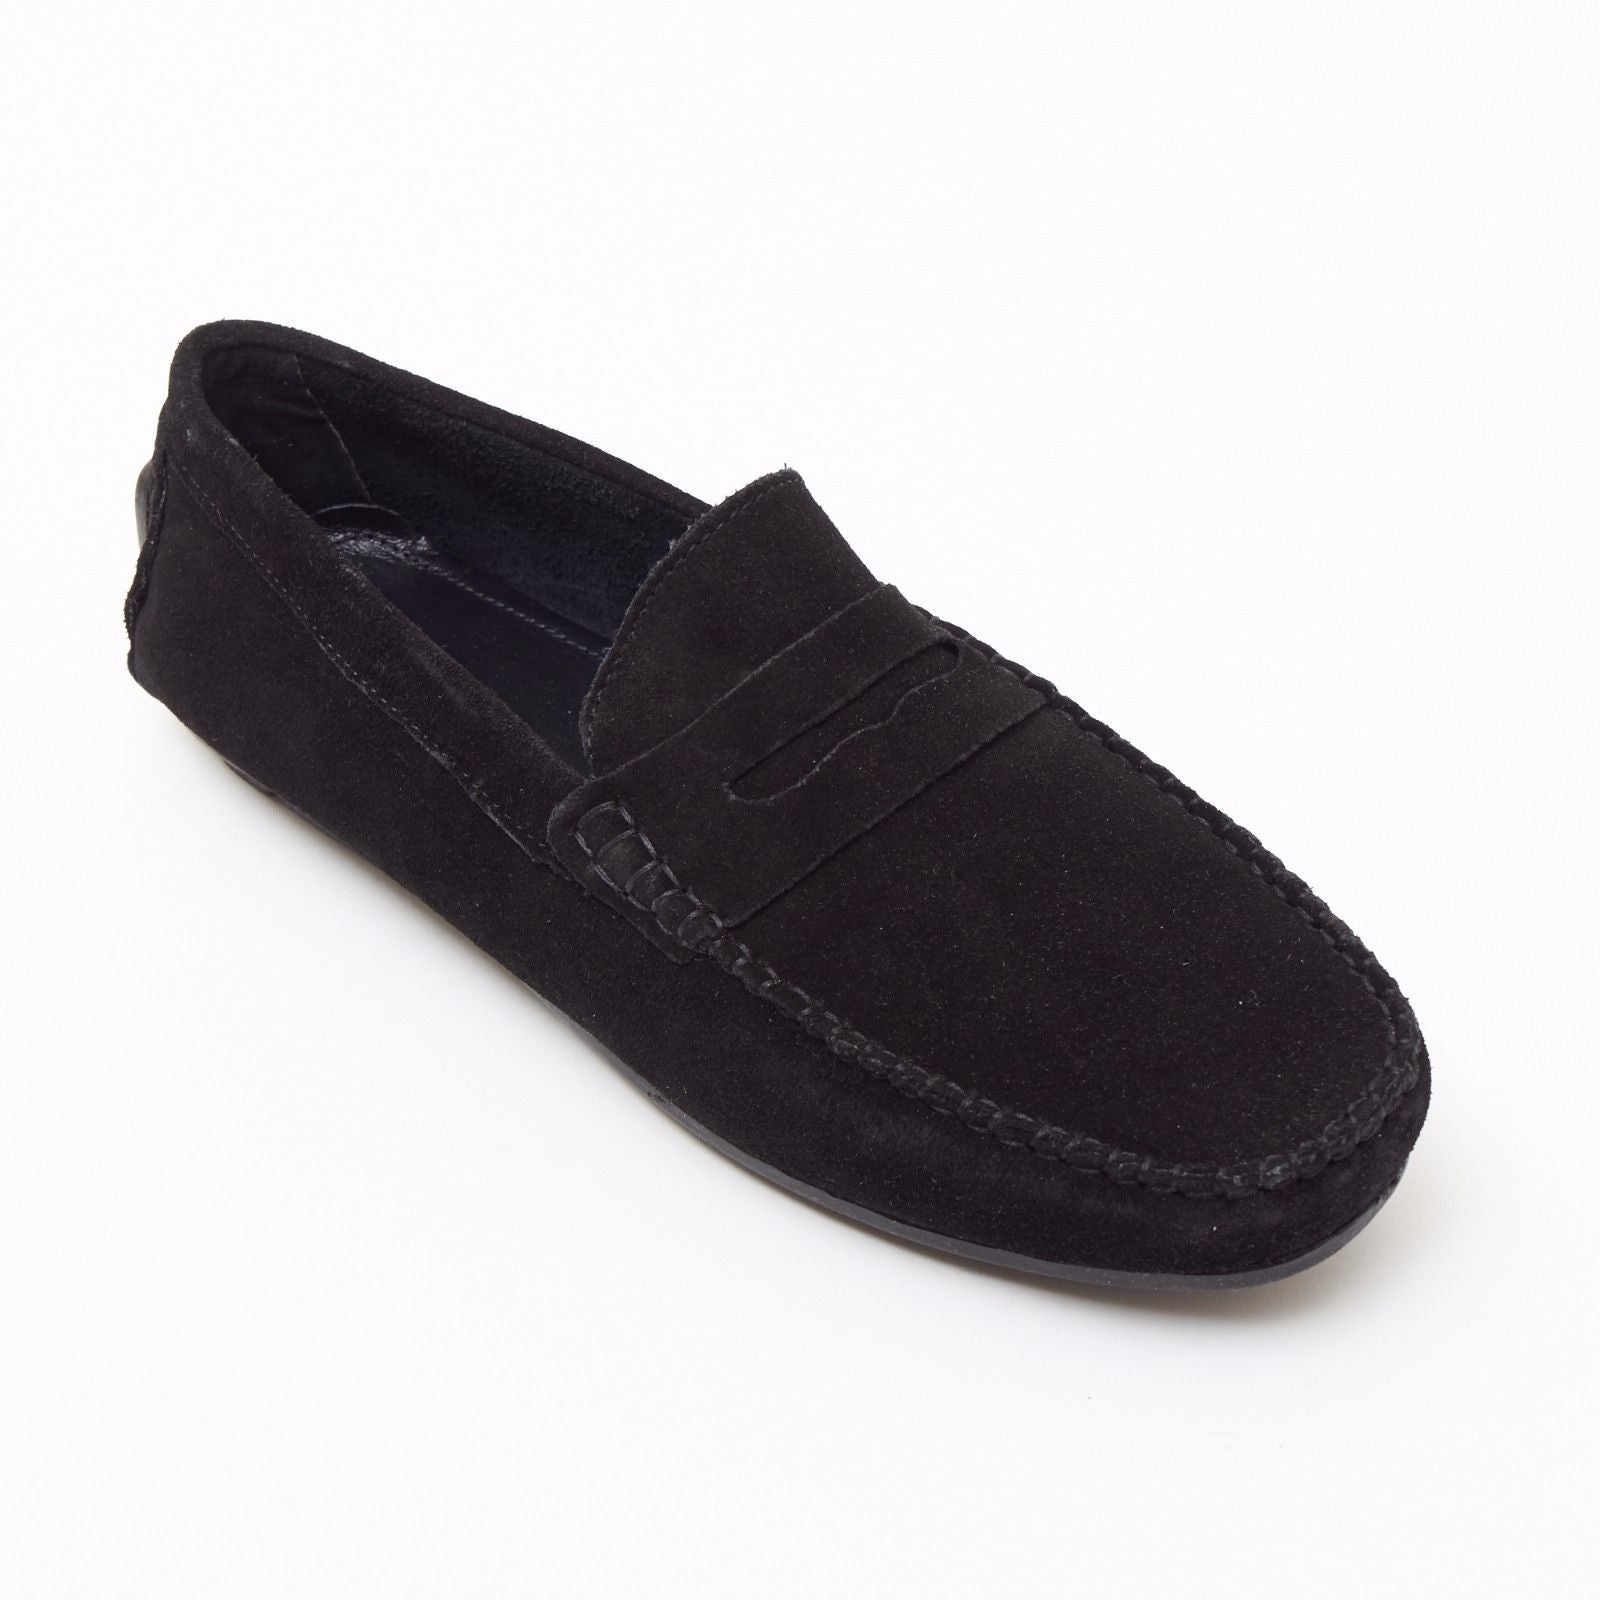 Mens Suede Casual Slip On Shoes - 4611-S_Black